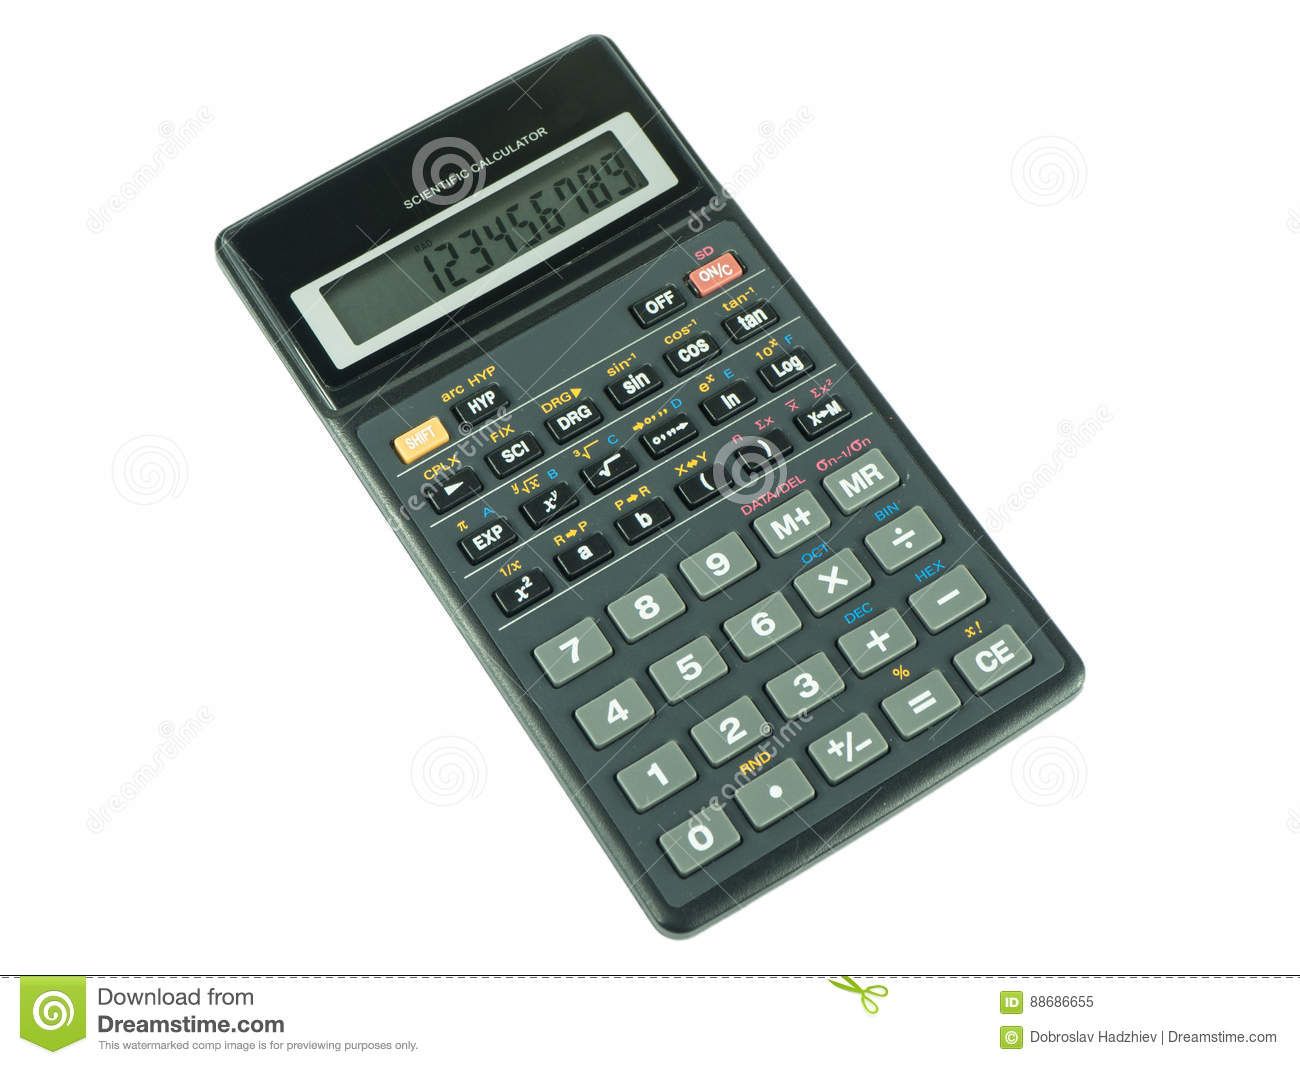 Switched on scientific calculator on white background